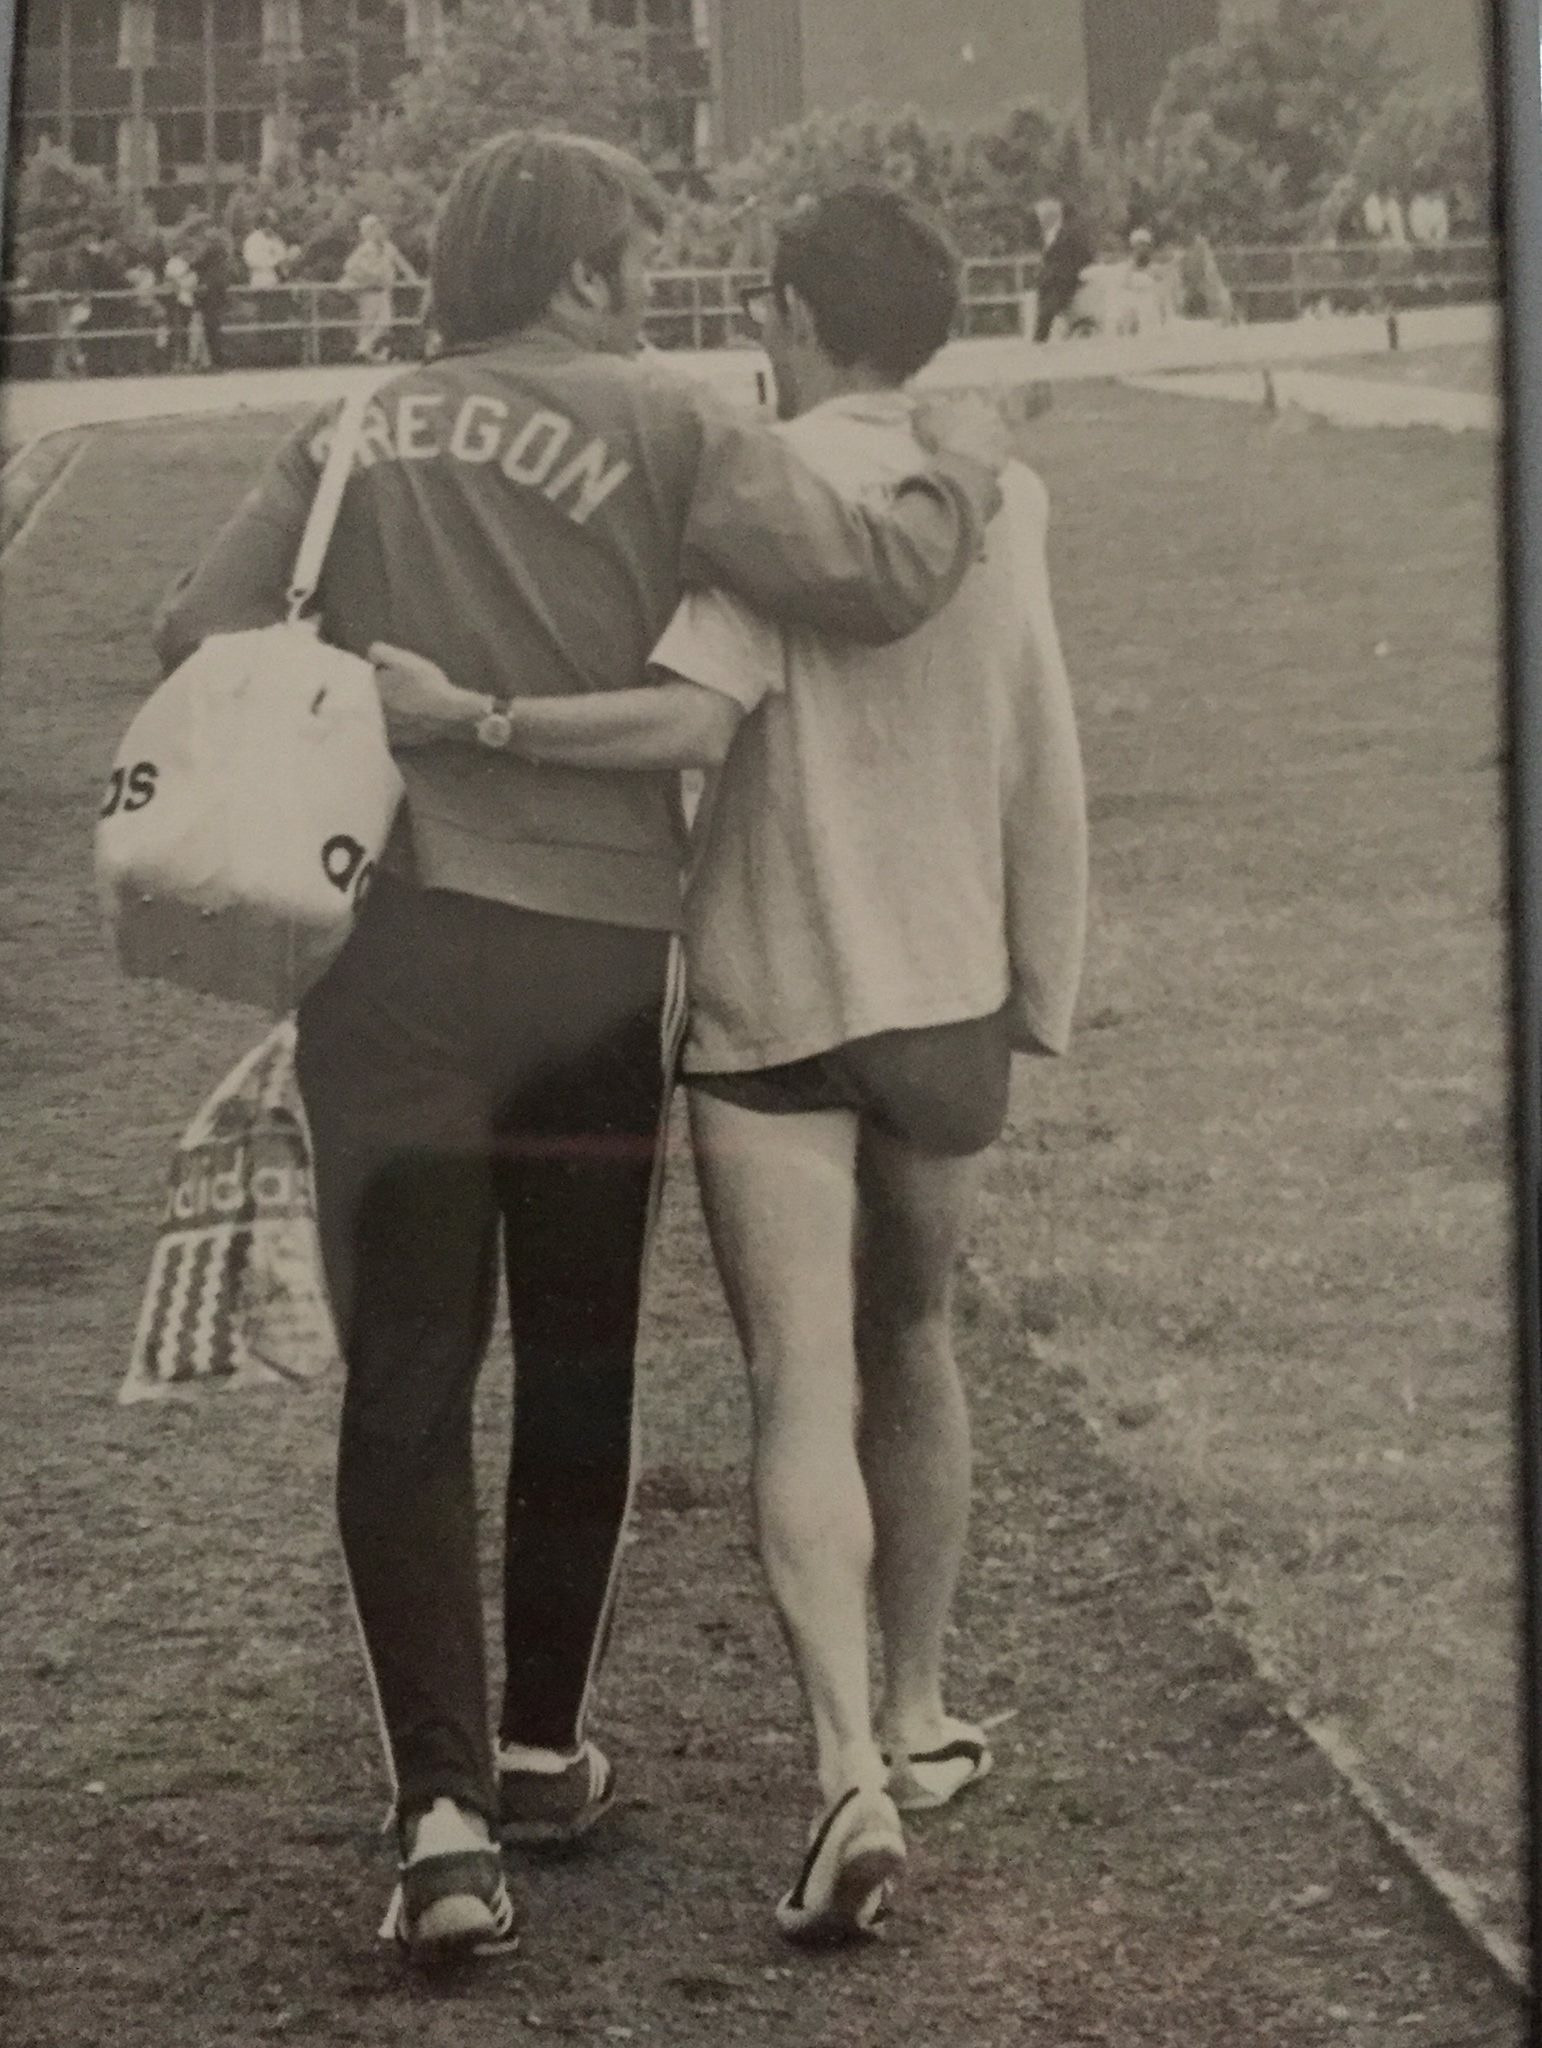 Steve Prefontaine's sister's favorite photo of her brother is not one of him crossing the finish line